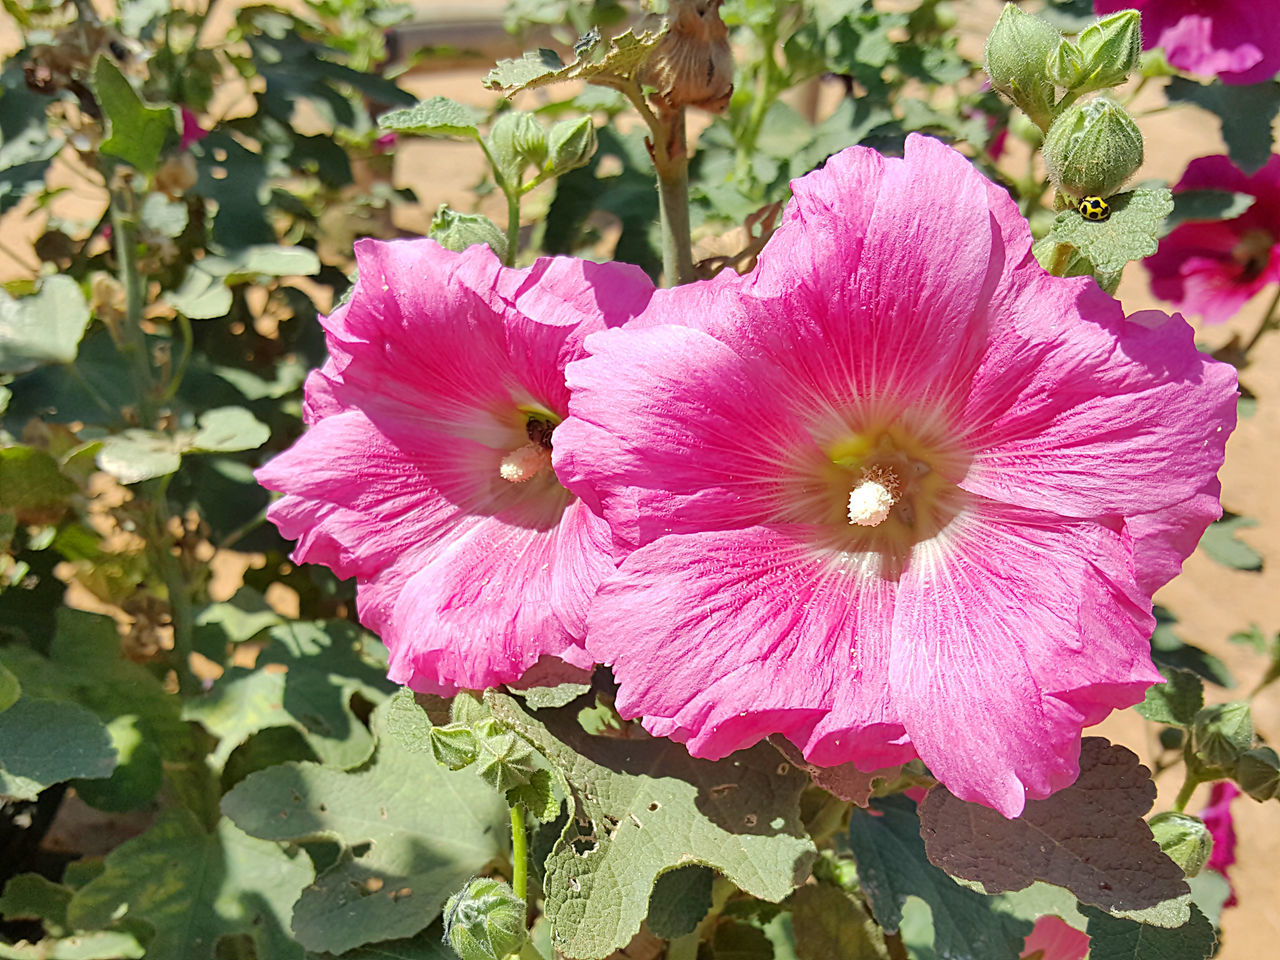 Beautiful pink hollyhock flower in the garden. Beauty In Nature Blooming Close-up Day Flower Flower Head Fragility Freshness Growth Leaf Nature No People Outdoors Petal Petunia Pink Color Pink Hollyhocks Plant